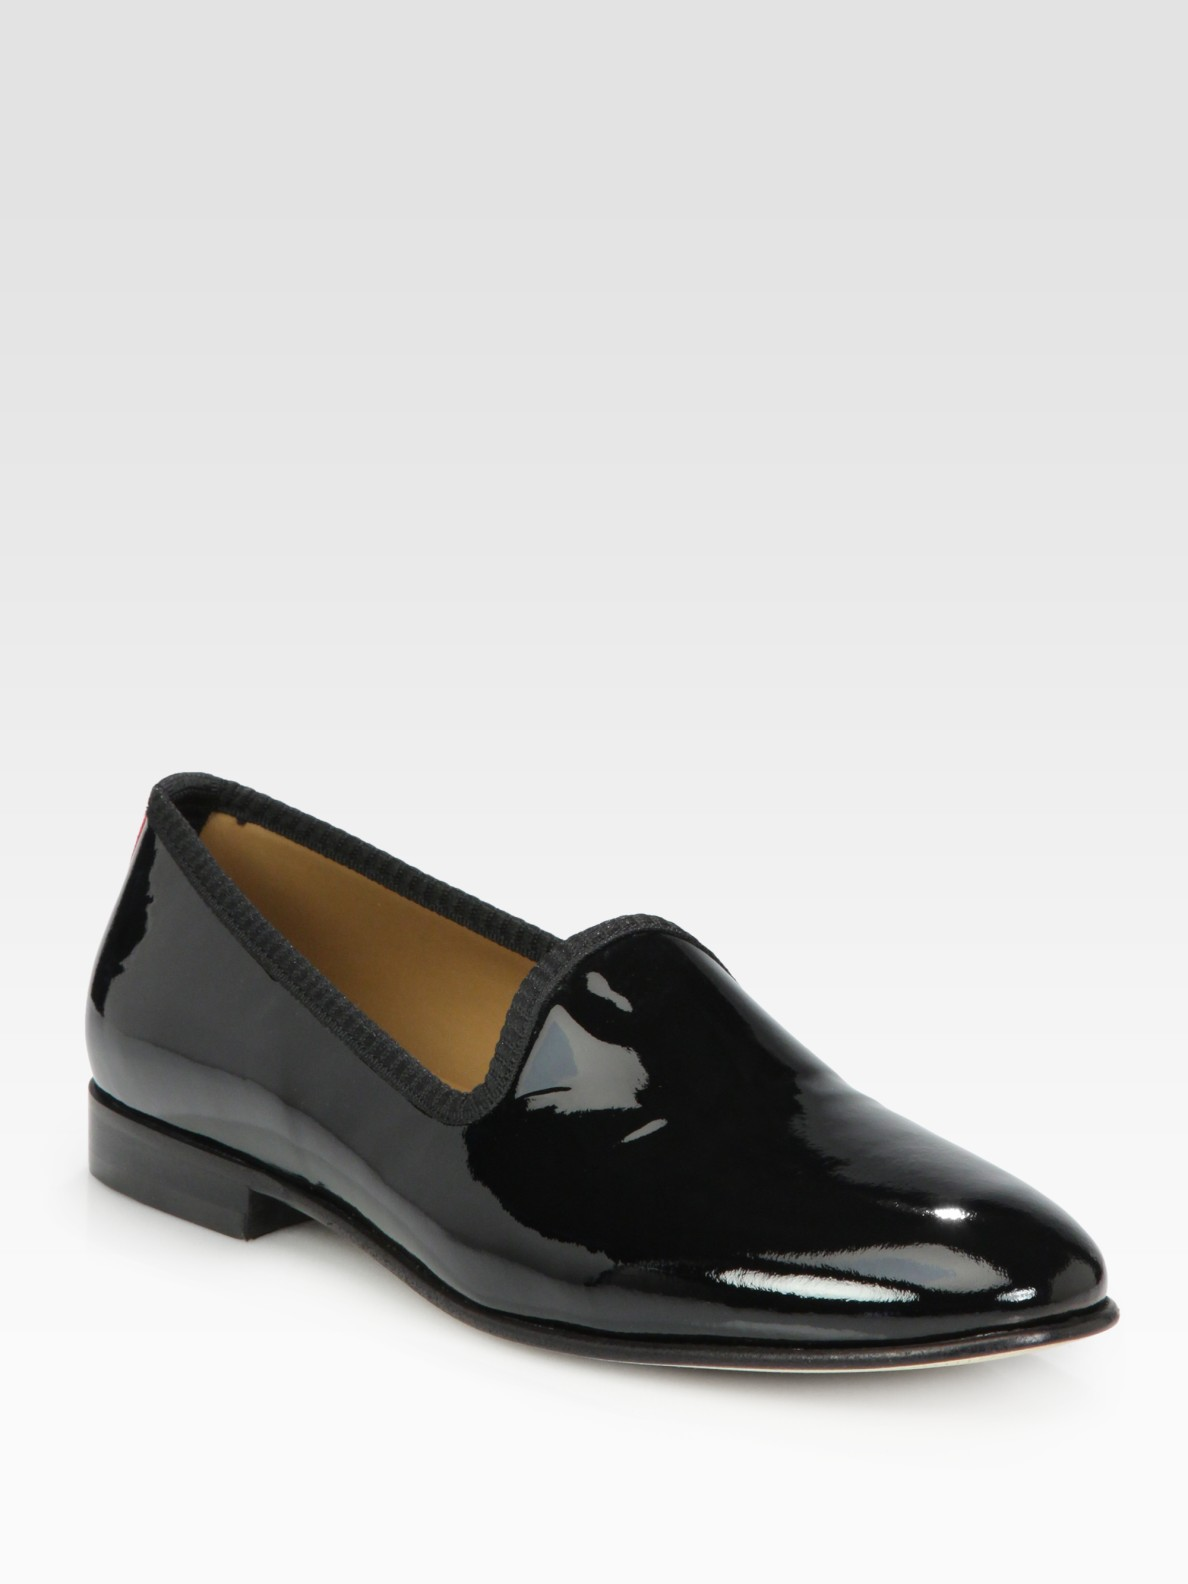 Del Toro Men S Shoes  In Leather Brown